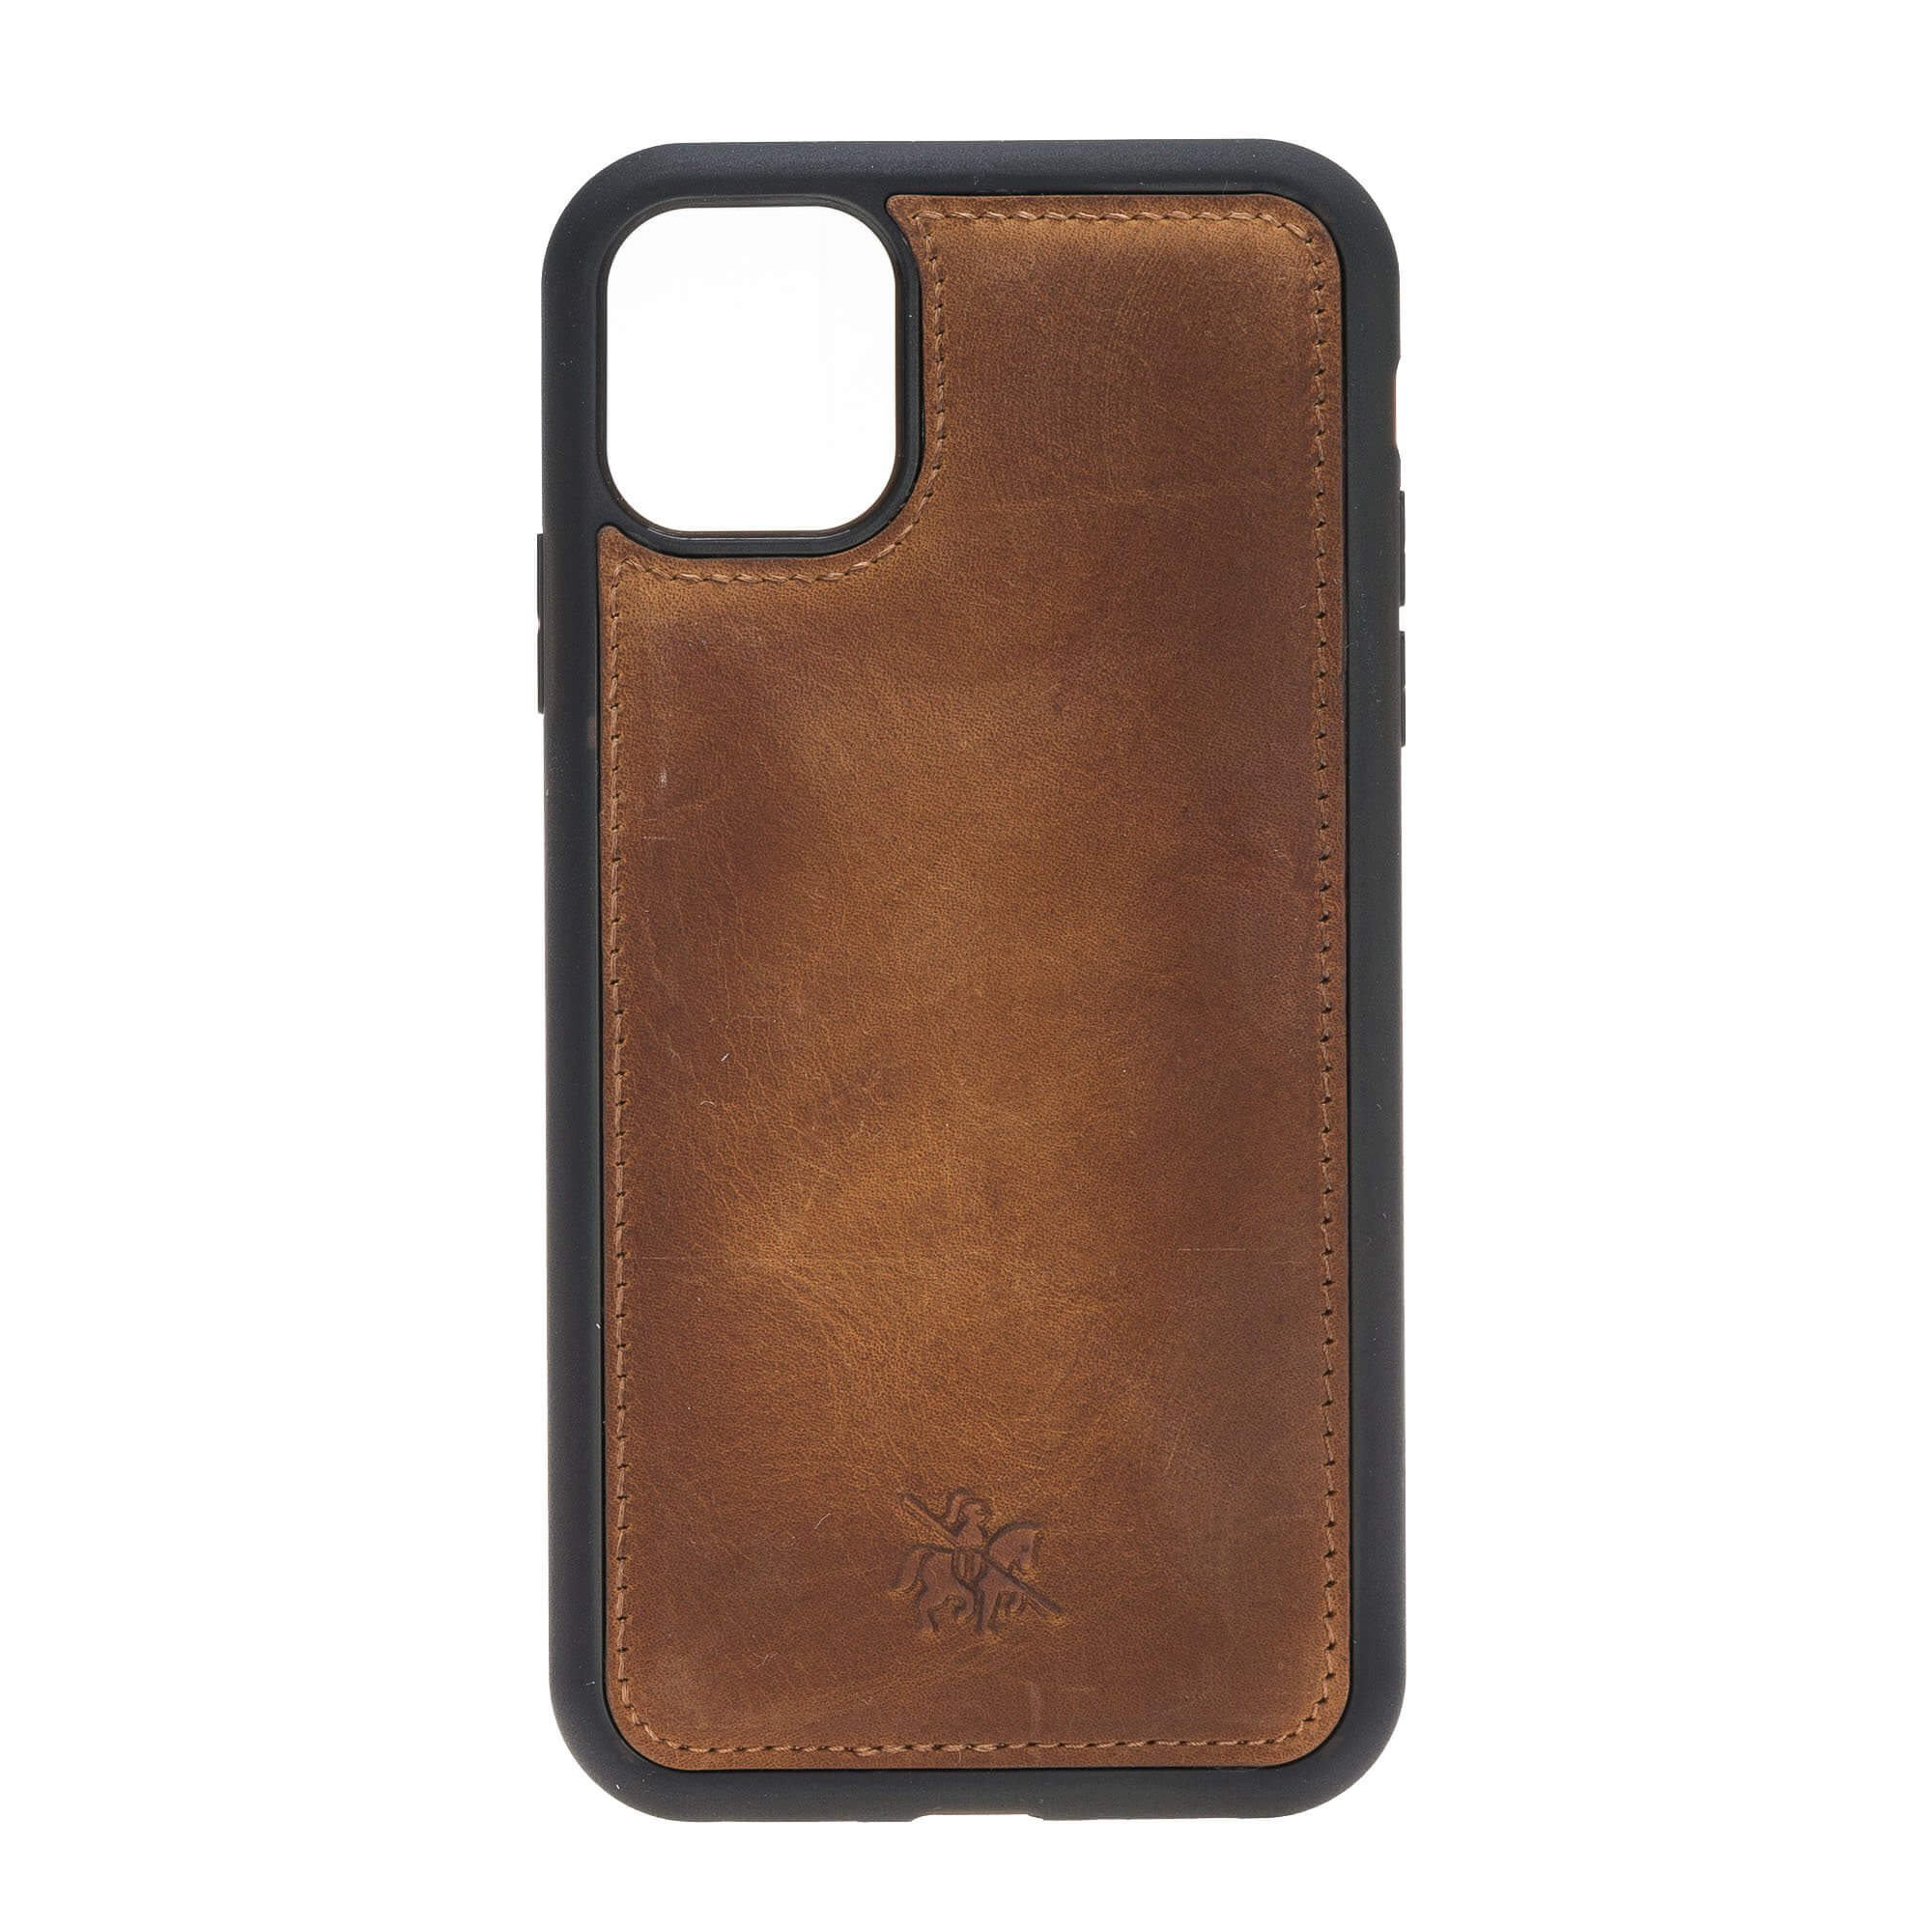 Lucca Snap On Leather Case for iPhone 11 Pro Max